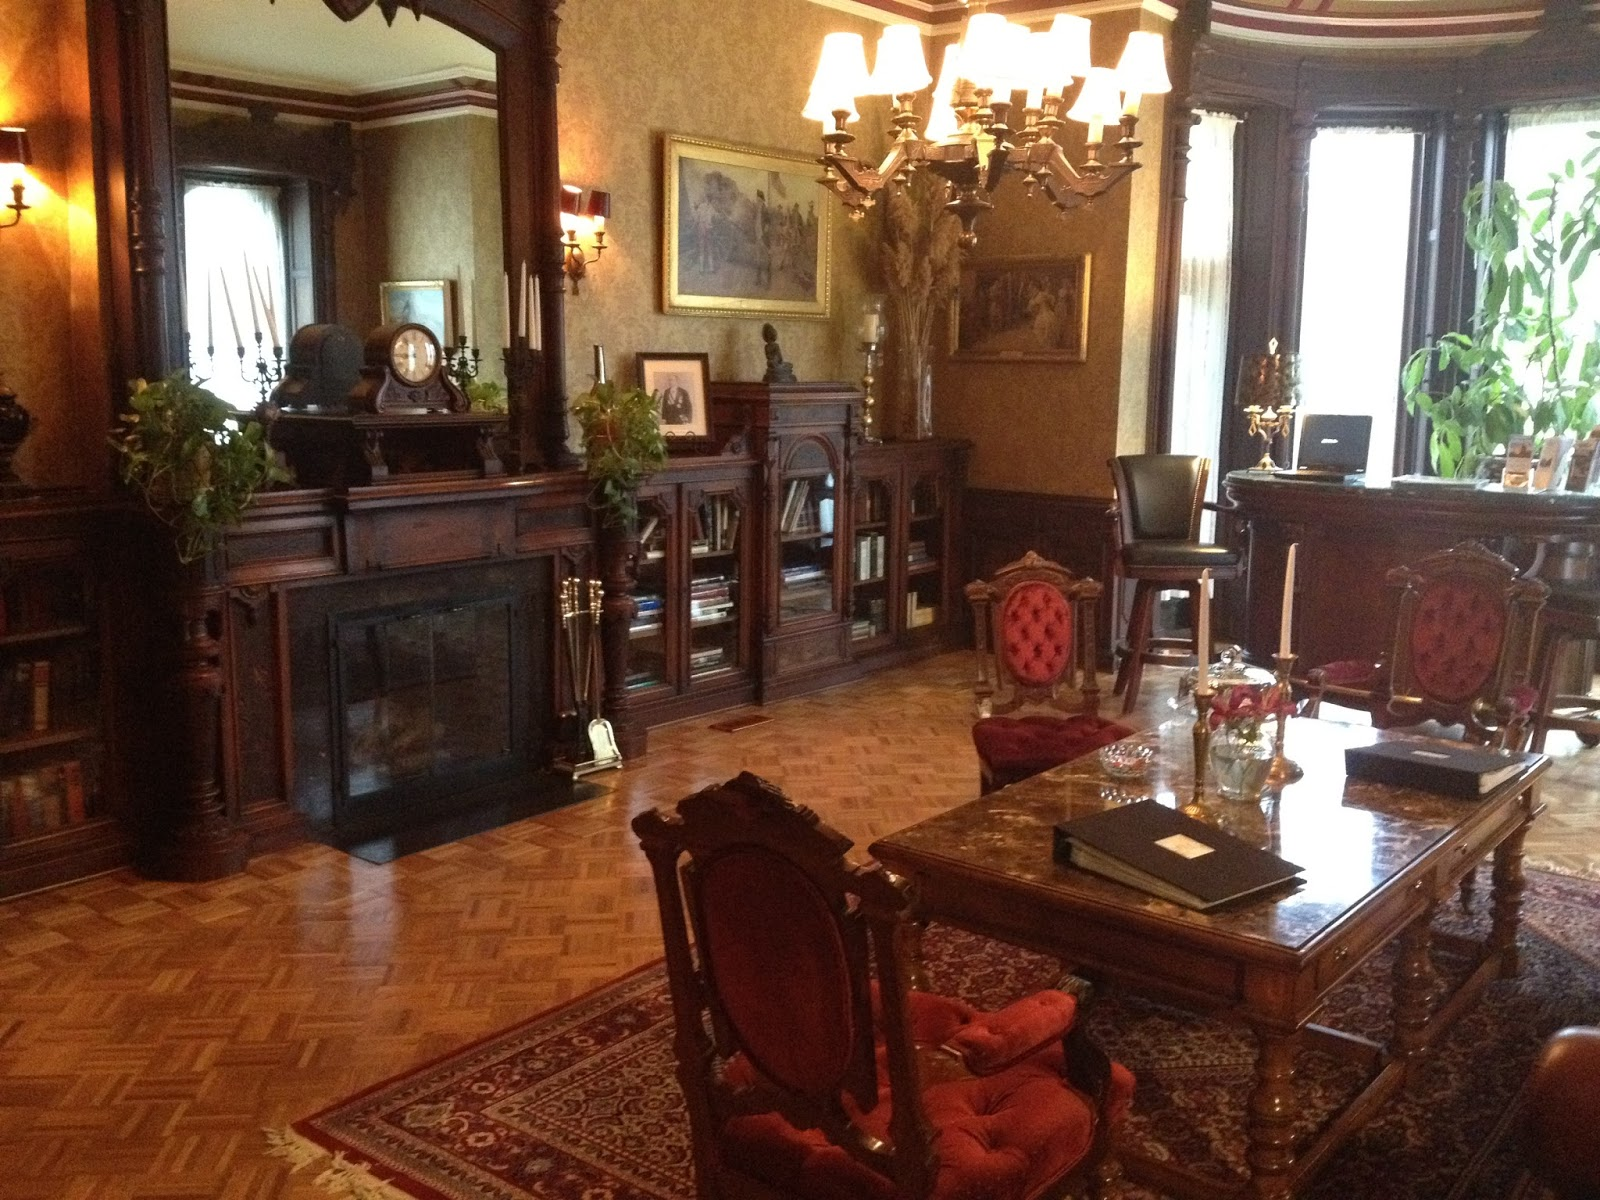 An uptown dandy places we like to stay the batcheller for Where to stay in saratoga springs ny